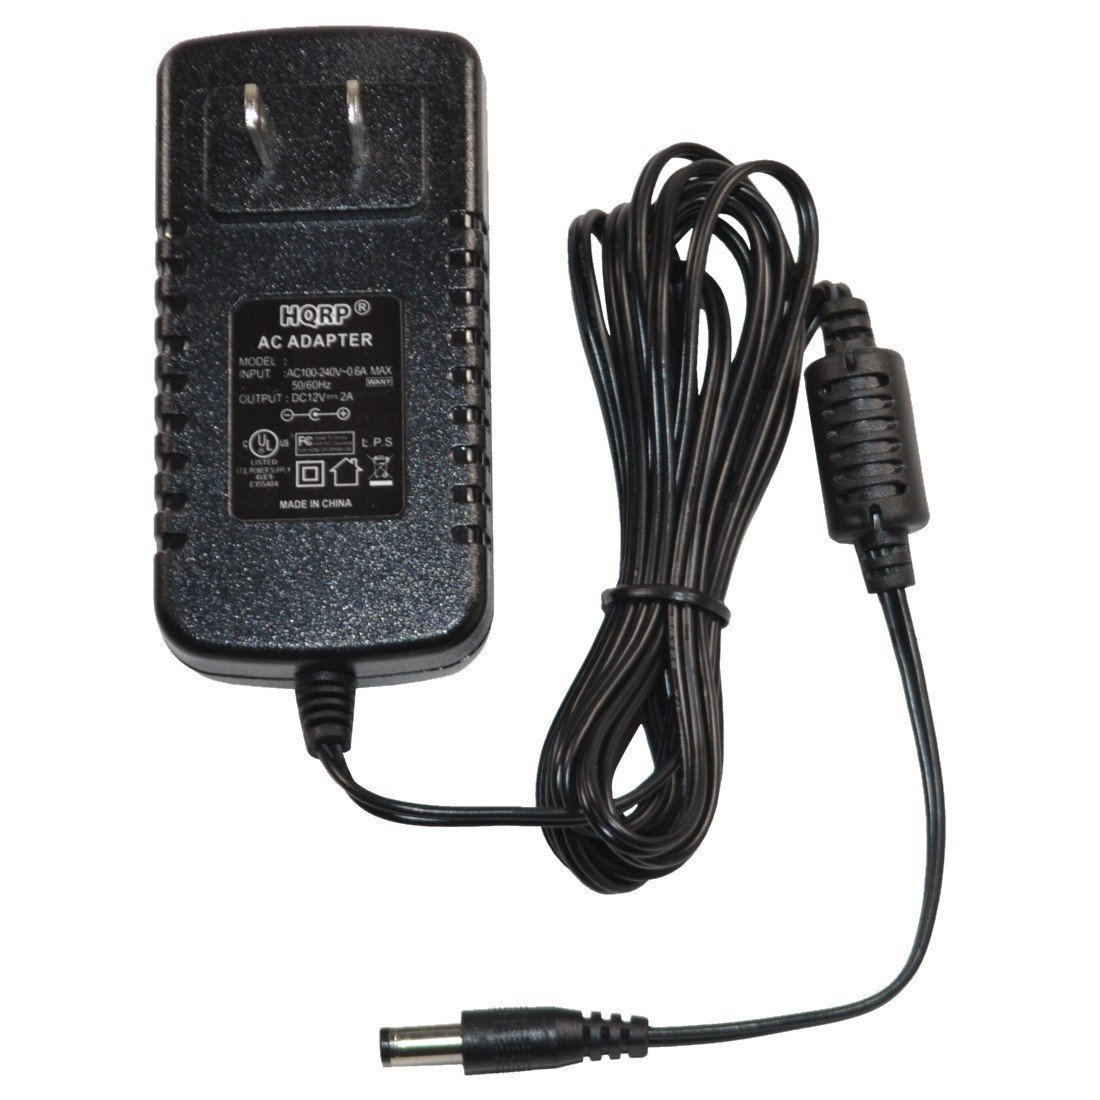 6.6 Ft BSW0134-1202002W BSWO134-1202002W Power Supply Charger for Horizon Fitness Elliptical Trainer Exercise EX-59 EX65 EX-65 EX66 EX-66 EX-69 EX75 EX-75 EX79 EX-79 LS635E LS-635 P//N T-Power Ac//DC Adapter